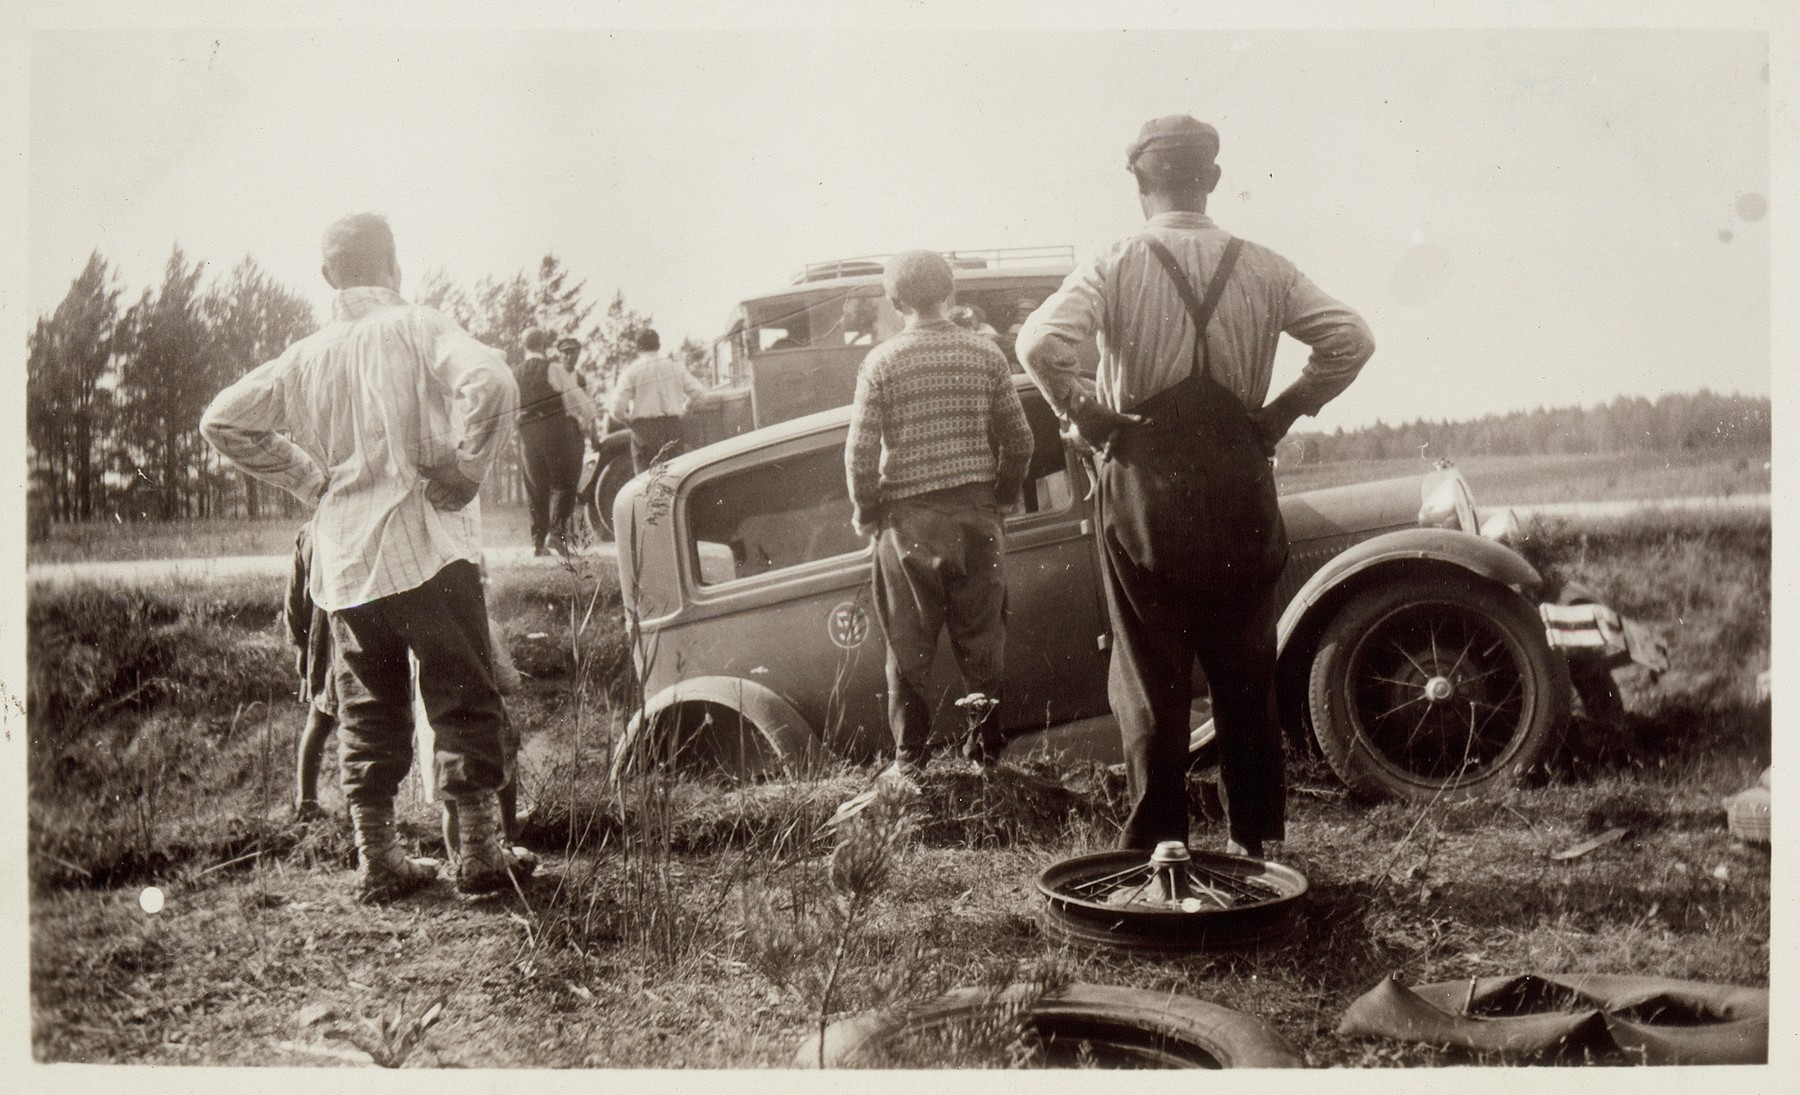 People look on with dismay at an automobile that ended up in a ditch after receiving a flat tire.